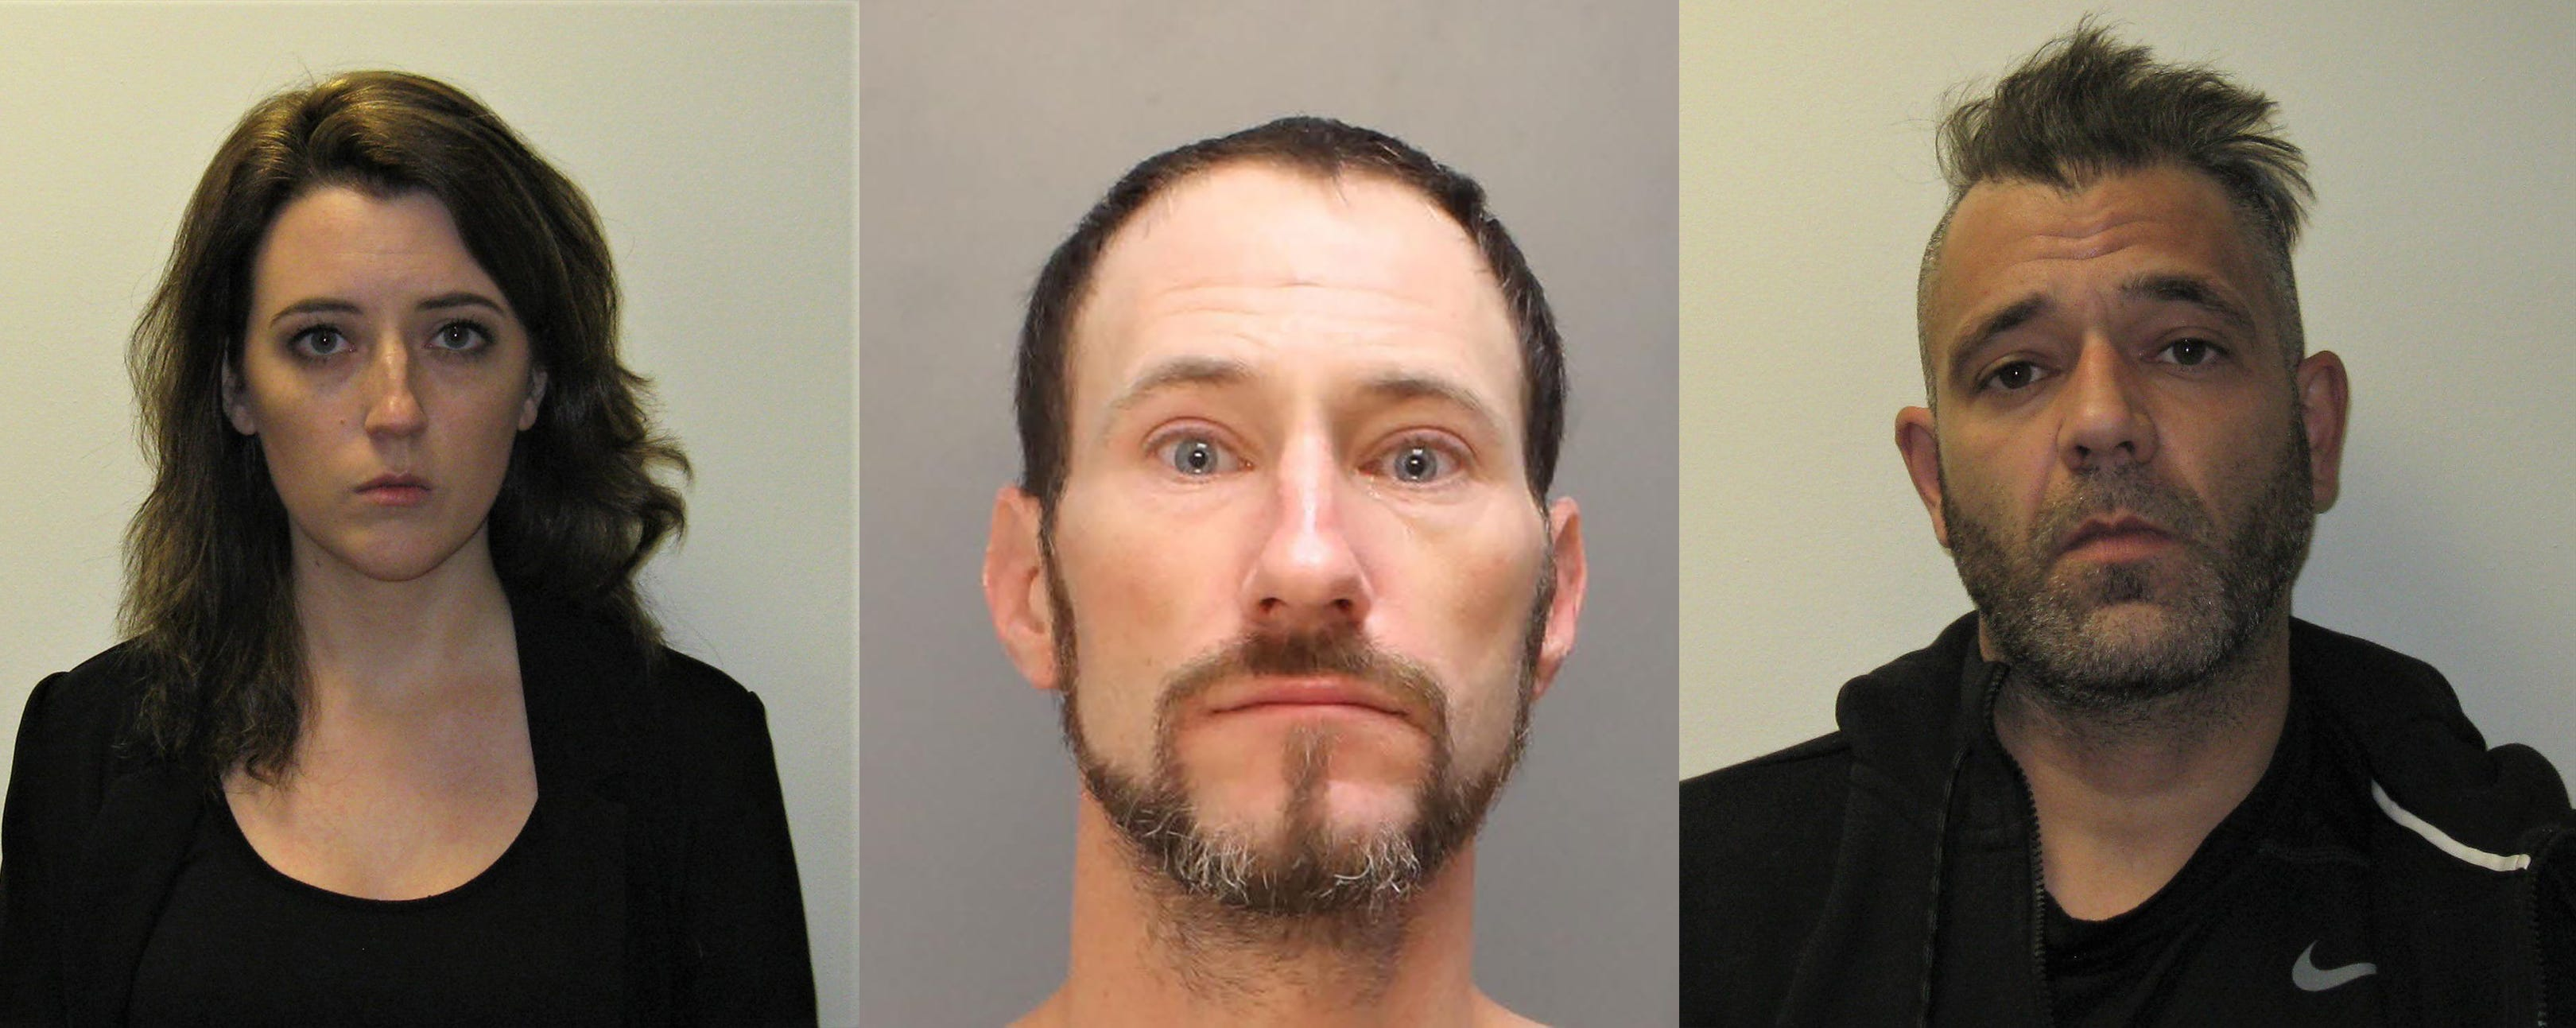 Katelynn McClure, Johnny Bobbitt Jr. and Mark D'Amico are charged with conspiring to steal through a GoFundMe campaign.